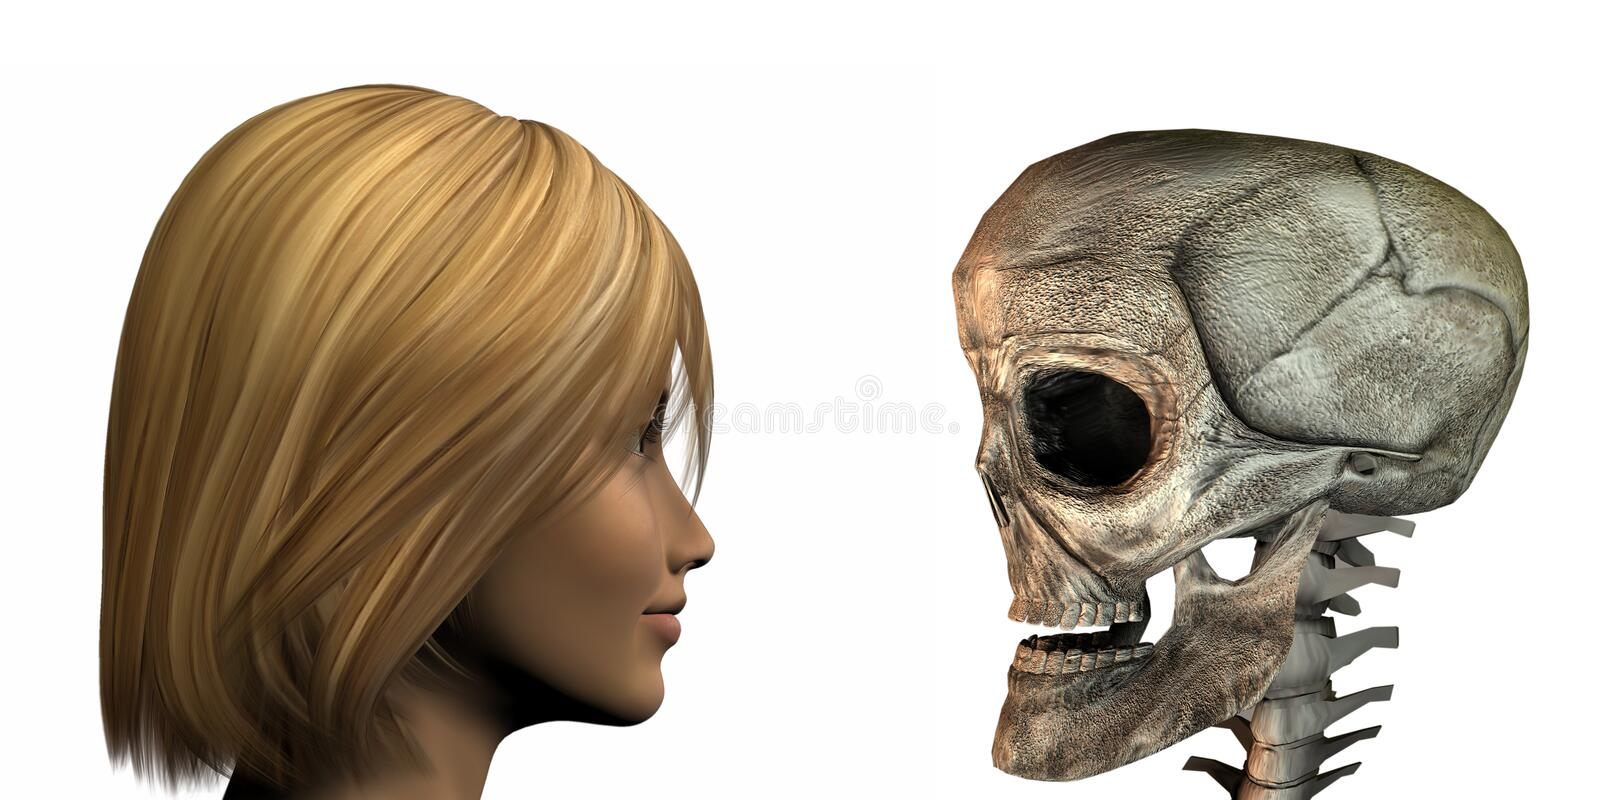 Young girl vs old skull isolated on a white